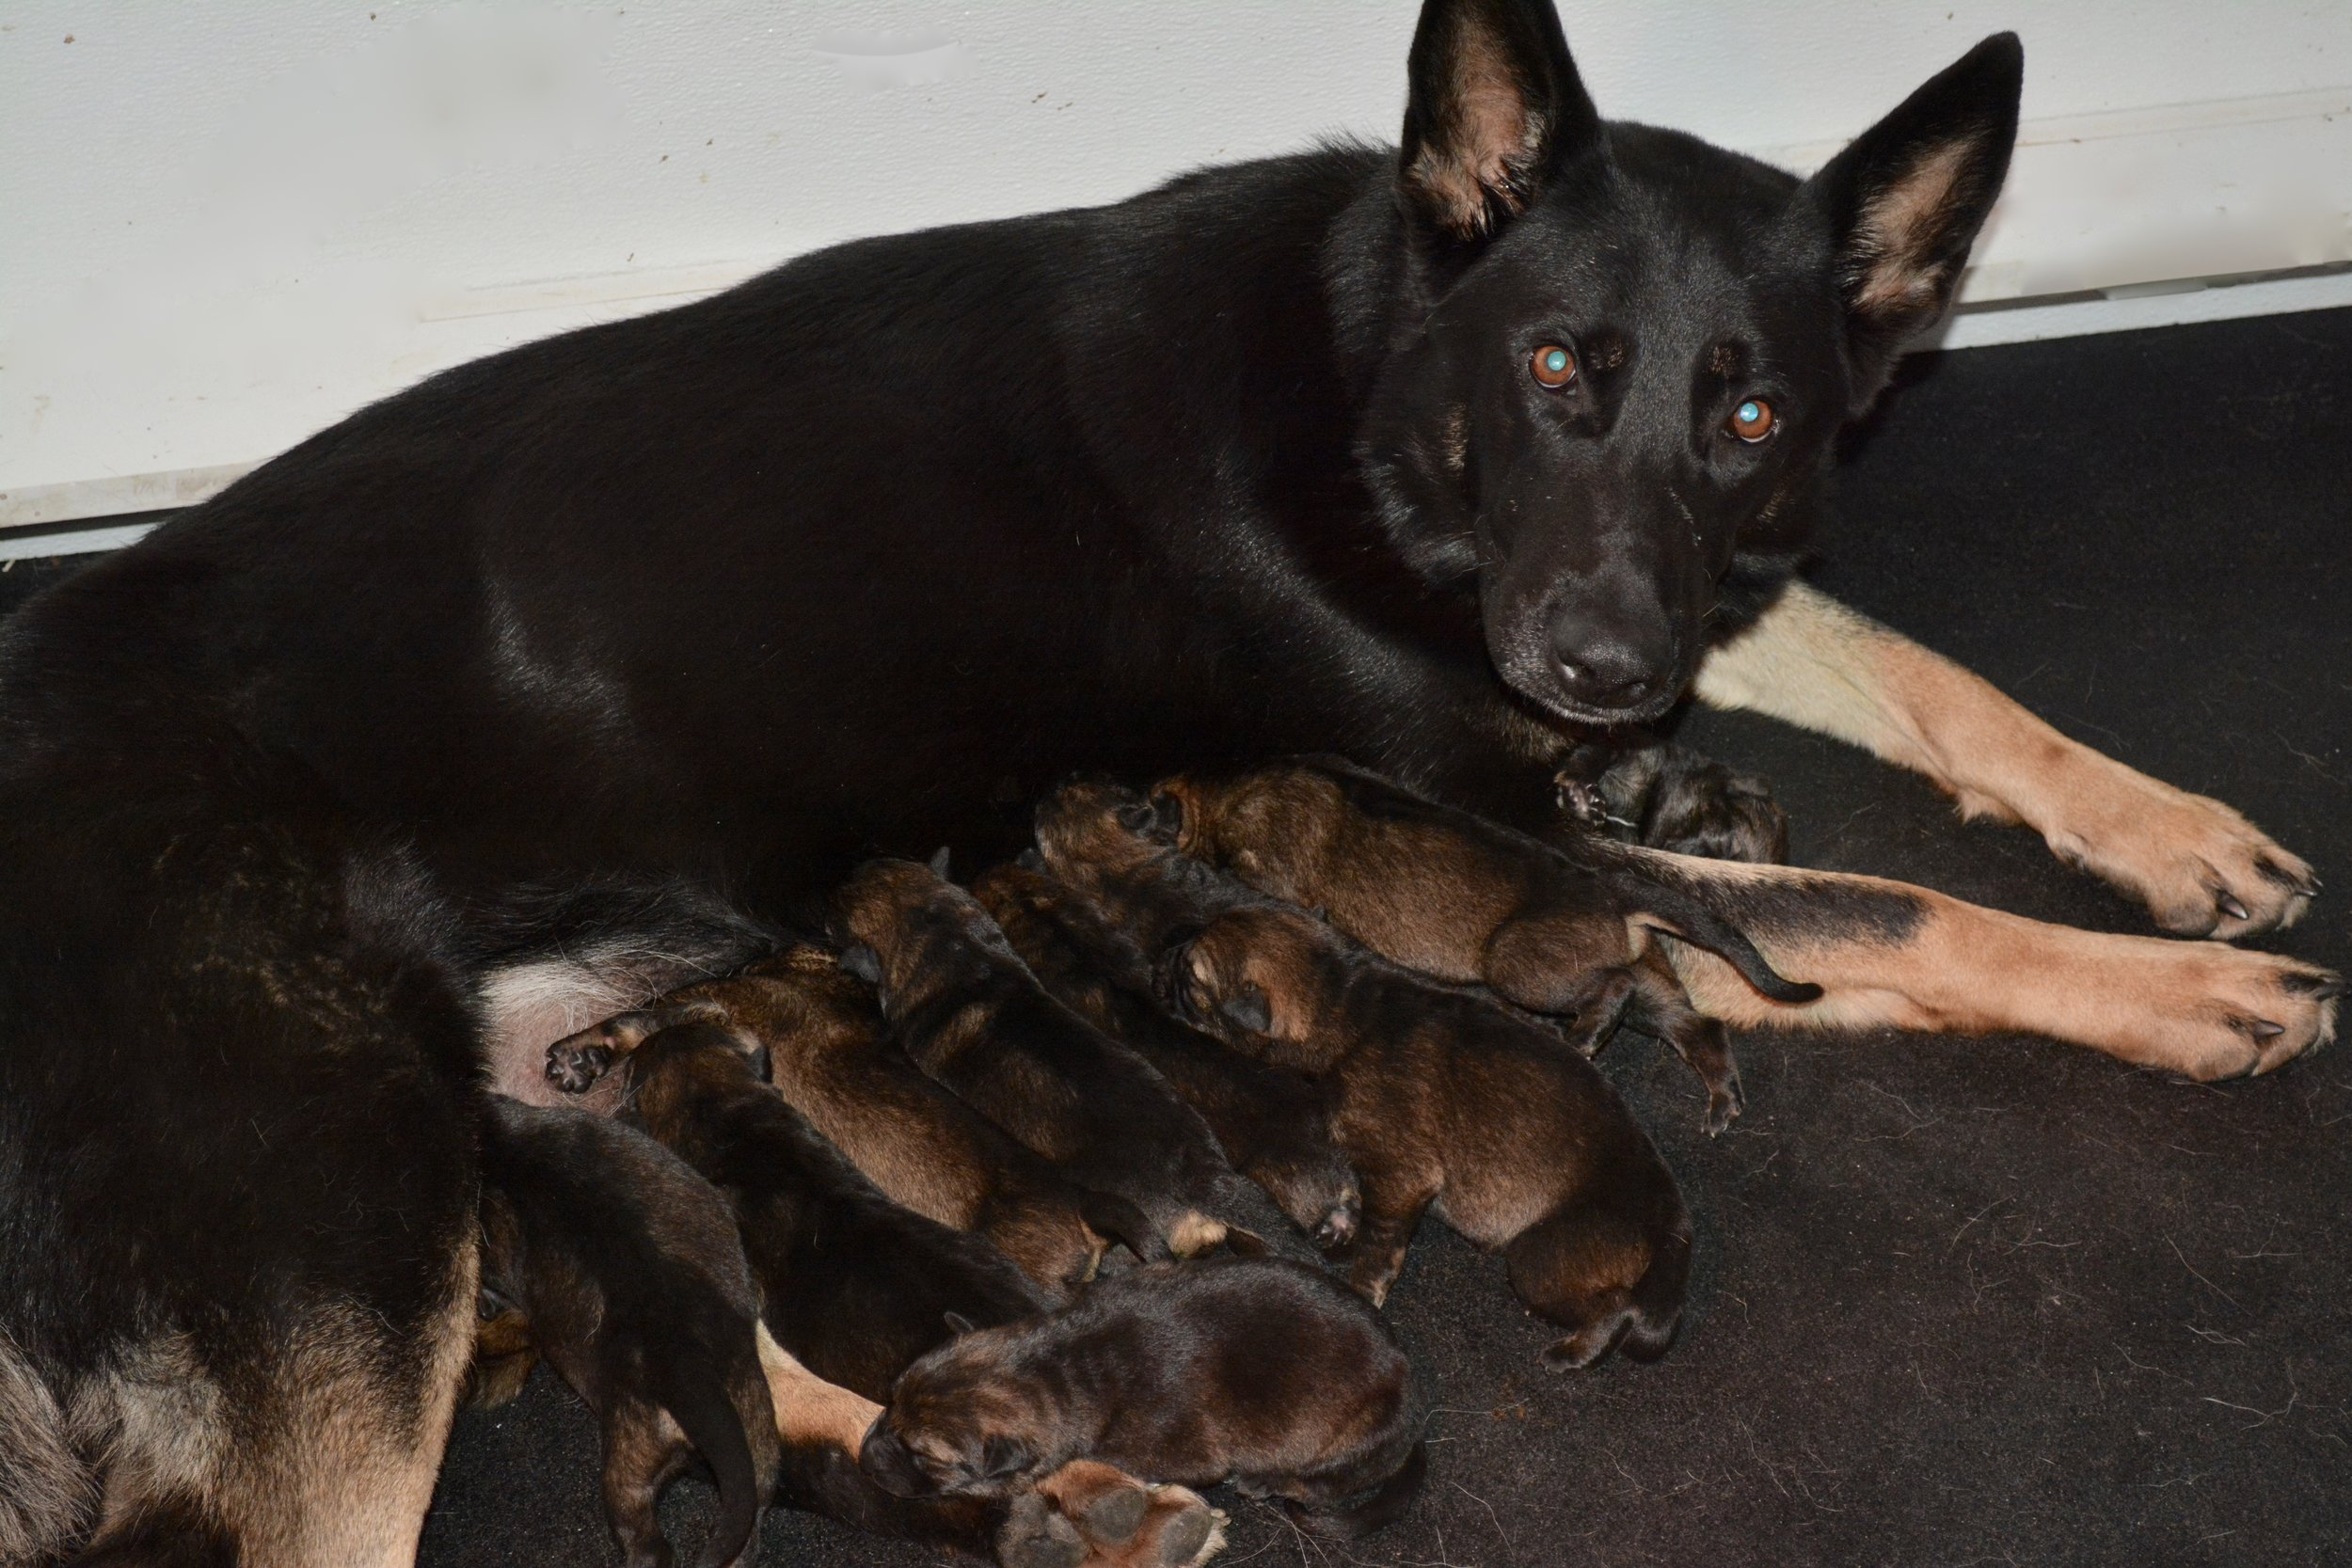 N-Litter Puppies at 2 days old. Born November 17, 2017. 5 Males & 6 Females